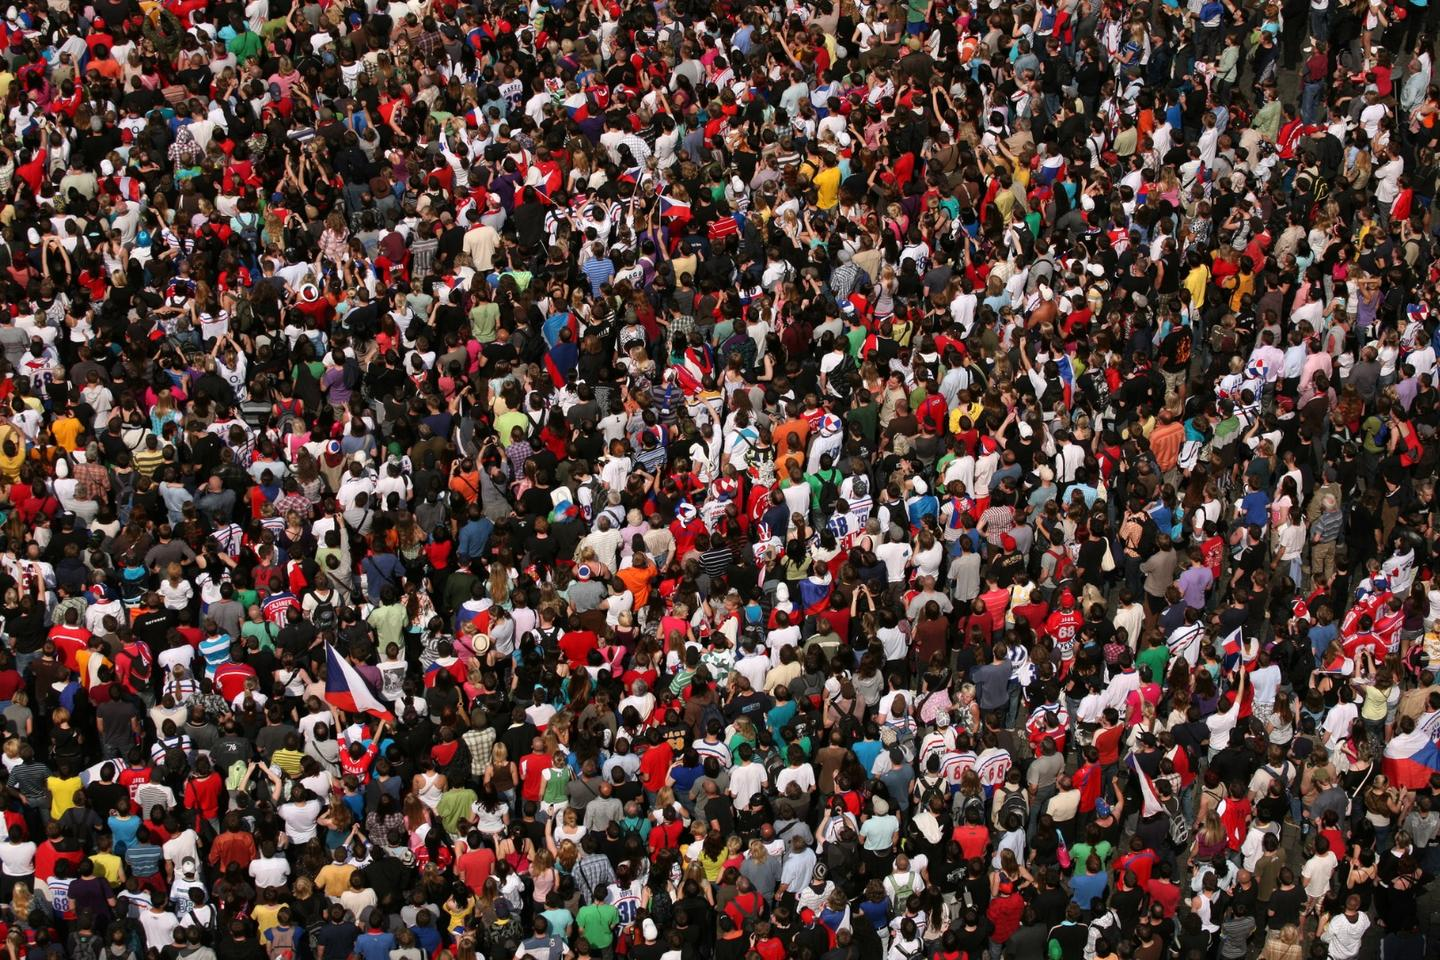 The United Nations World Population Prospects 2019 report paints a demographic picture of a very different world by the end of the 21st century